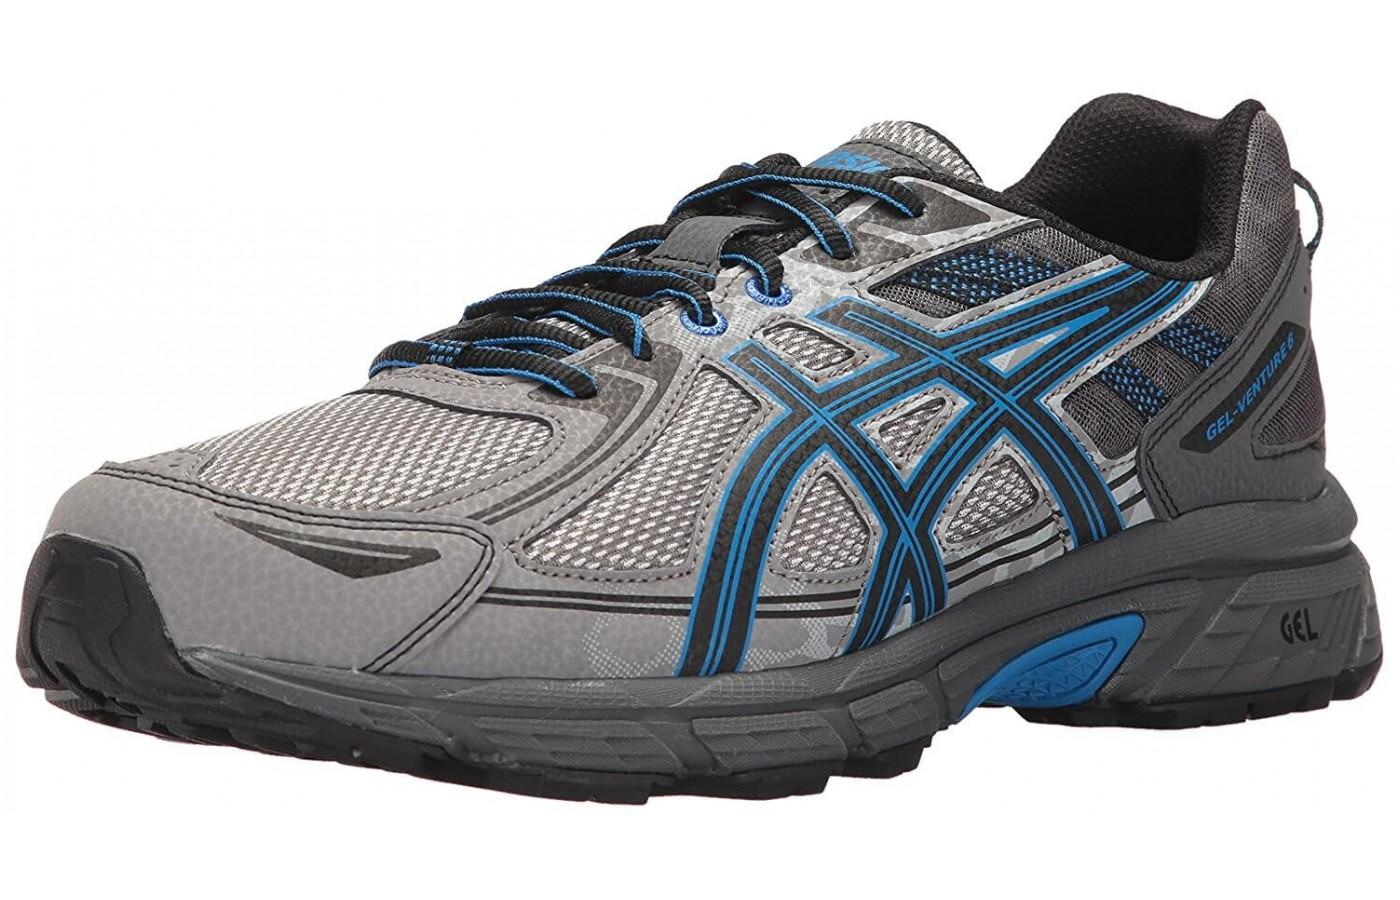 Asics Gel Venture 6 is a dependable trail shoe